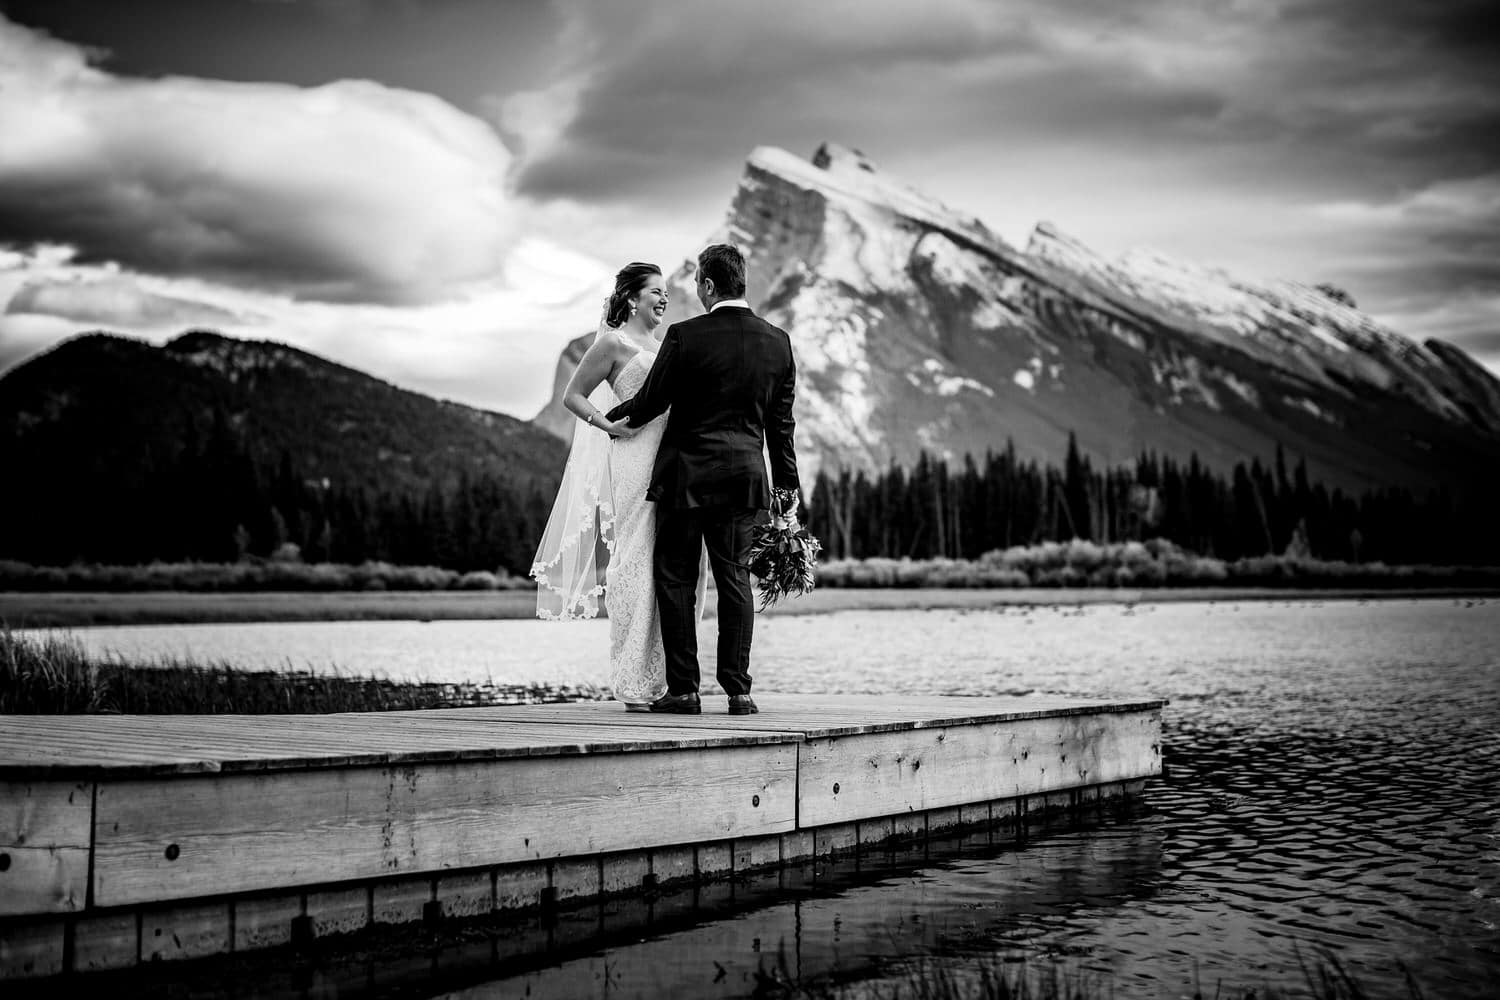 Lake Minnewanka with a bride and groom on the dock